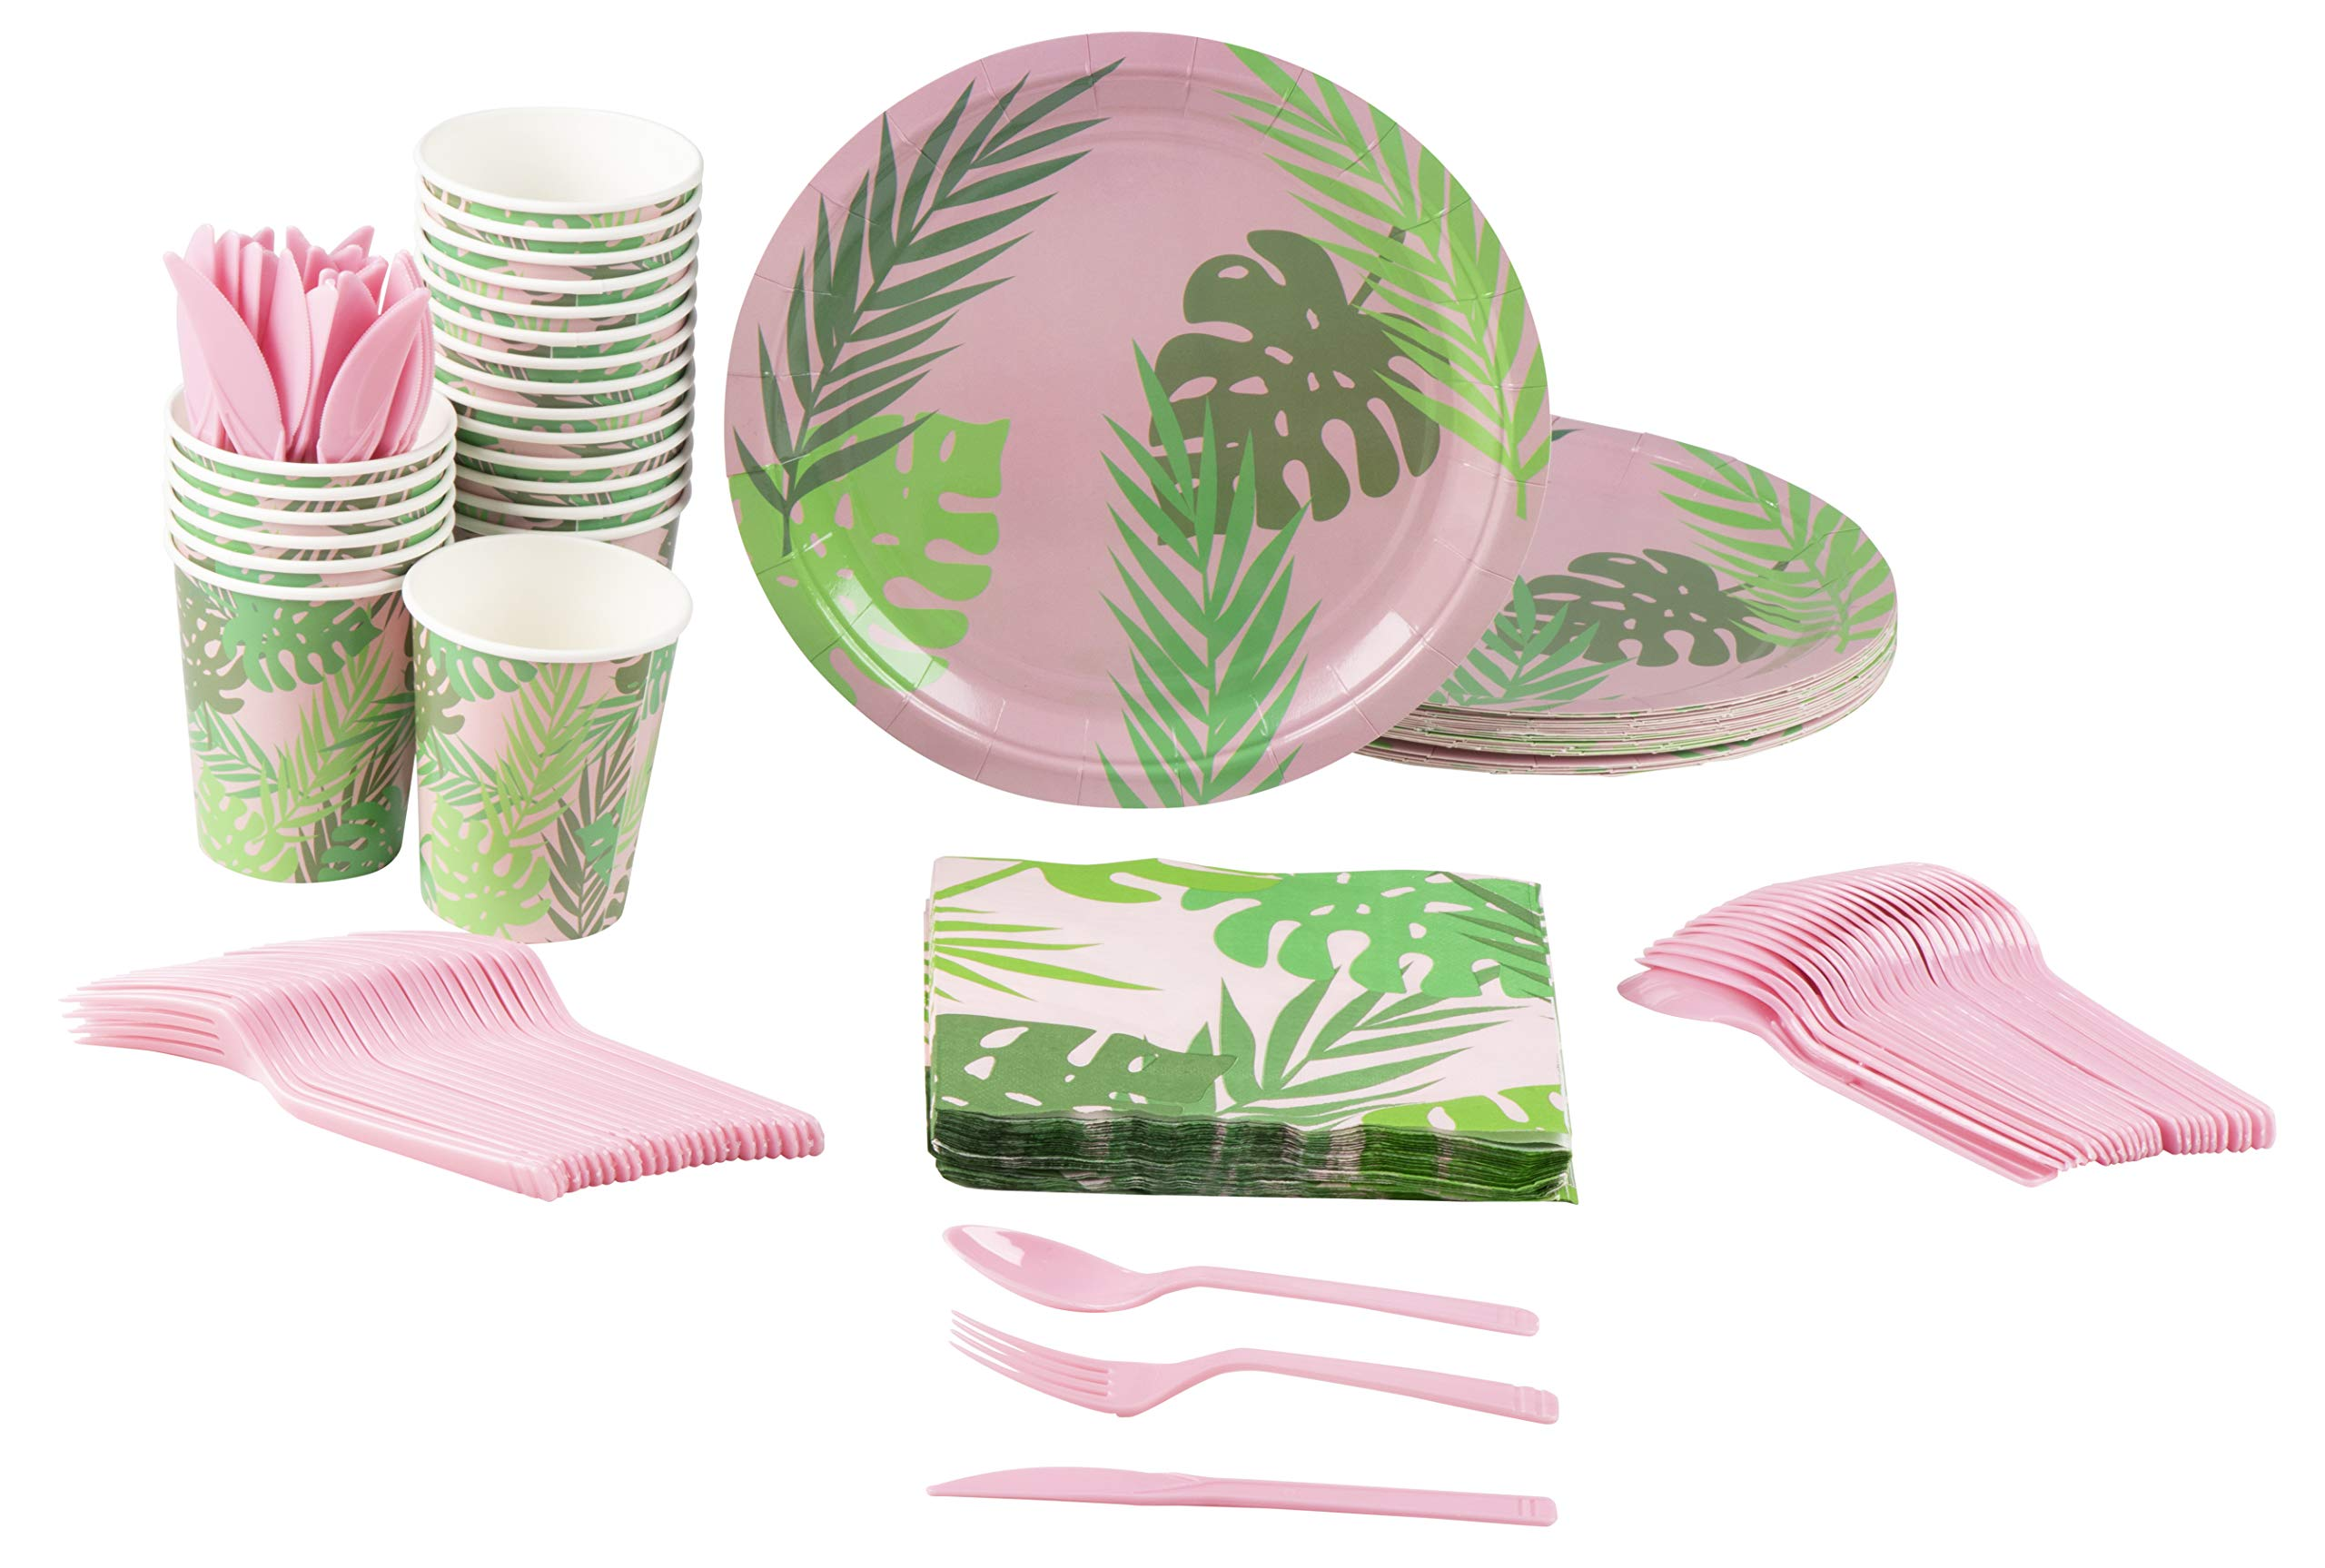 Disposable Dinnerware Set - Serves 24 - Tropical Party Supplies for Kids Birthdays, Bridal Showers, Palm Leaves Design, Includes Plastic Knives, Spoons, Forks, Paper Plates, Napkins, Cups